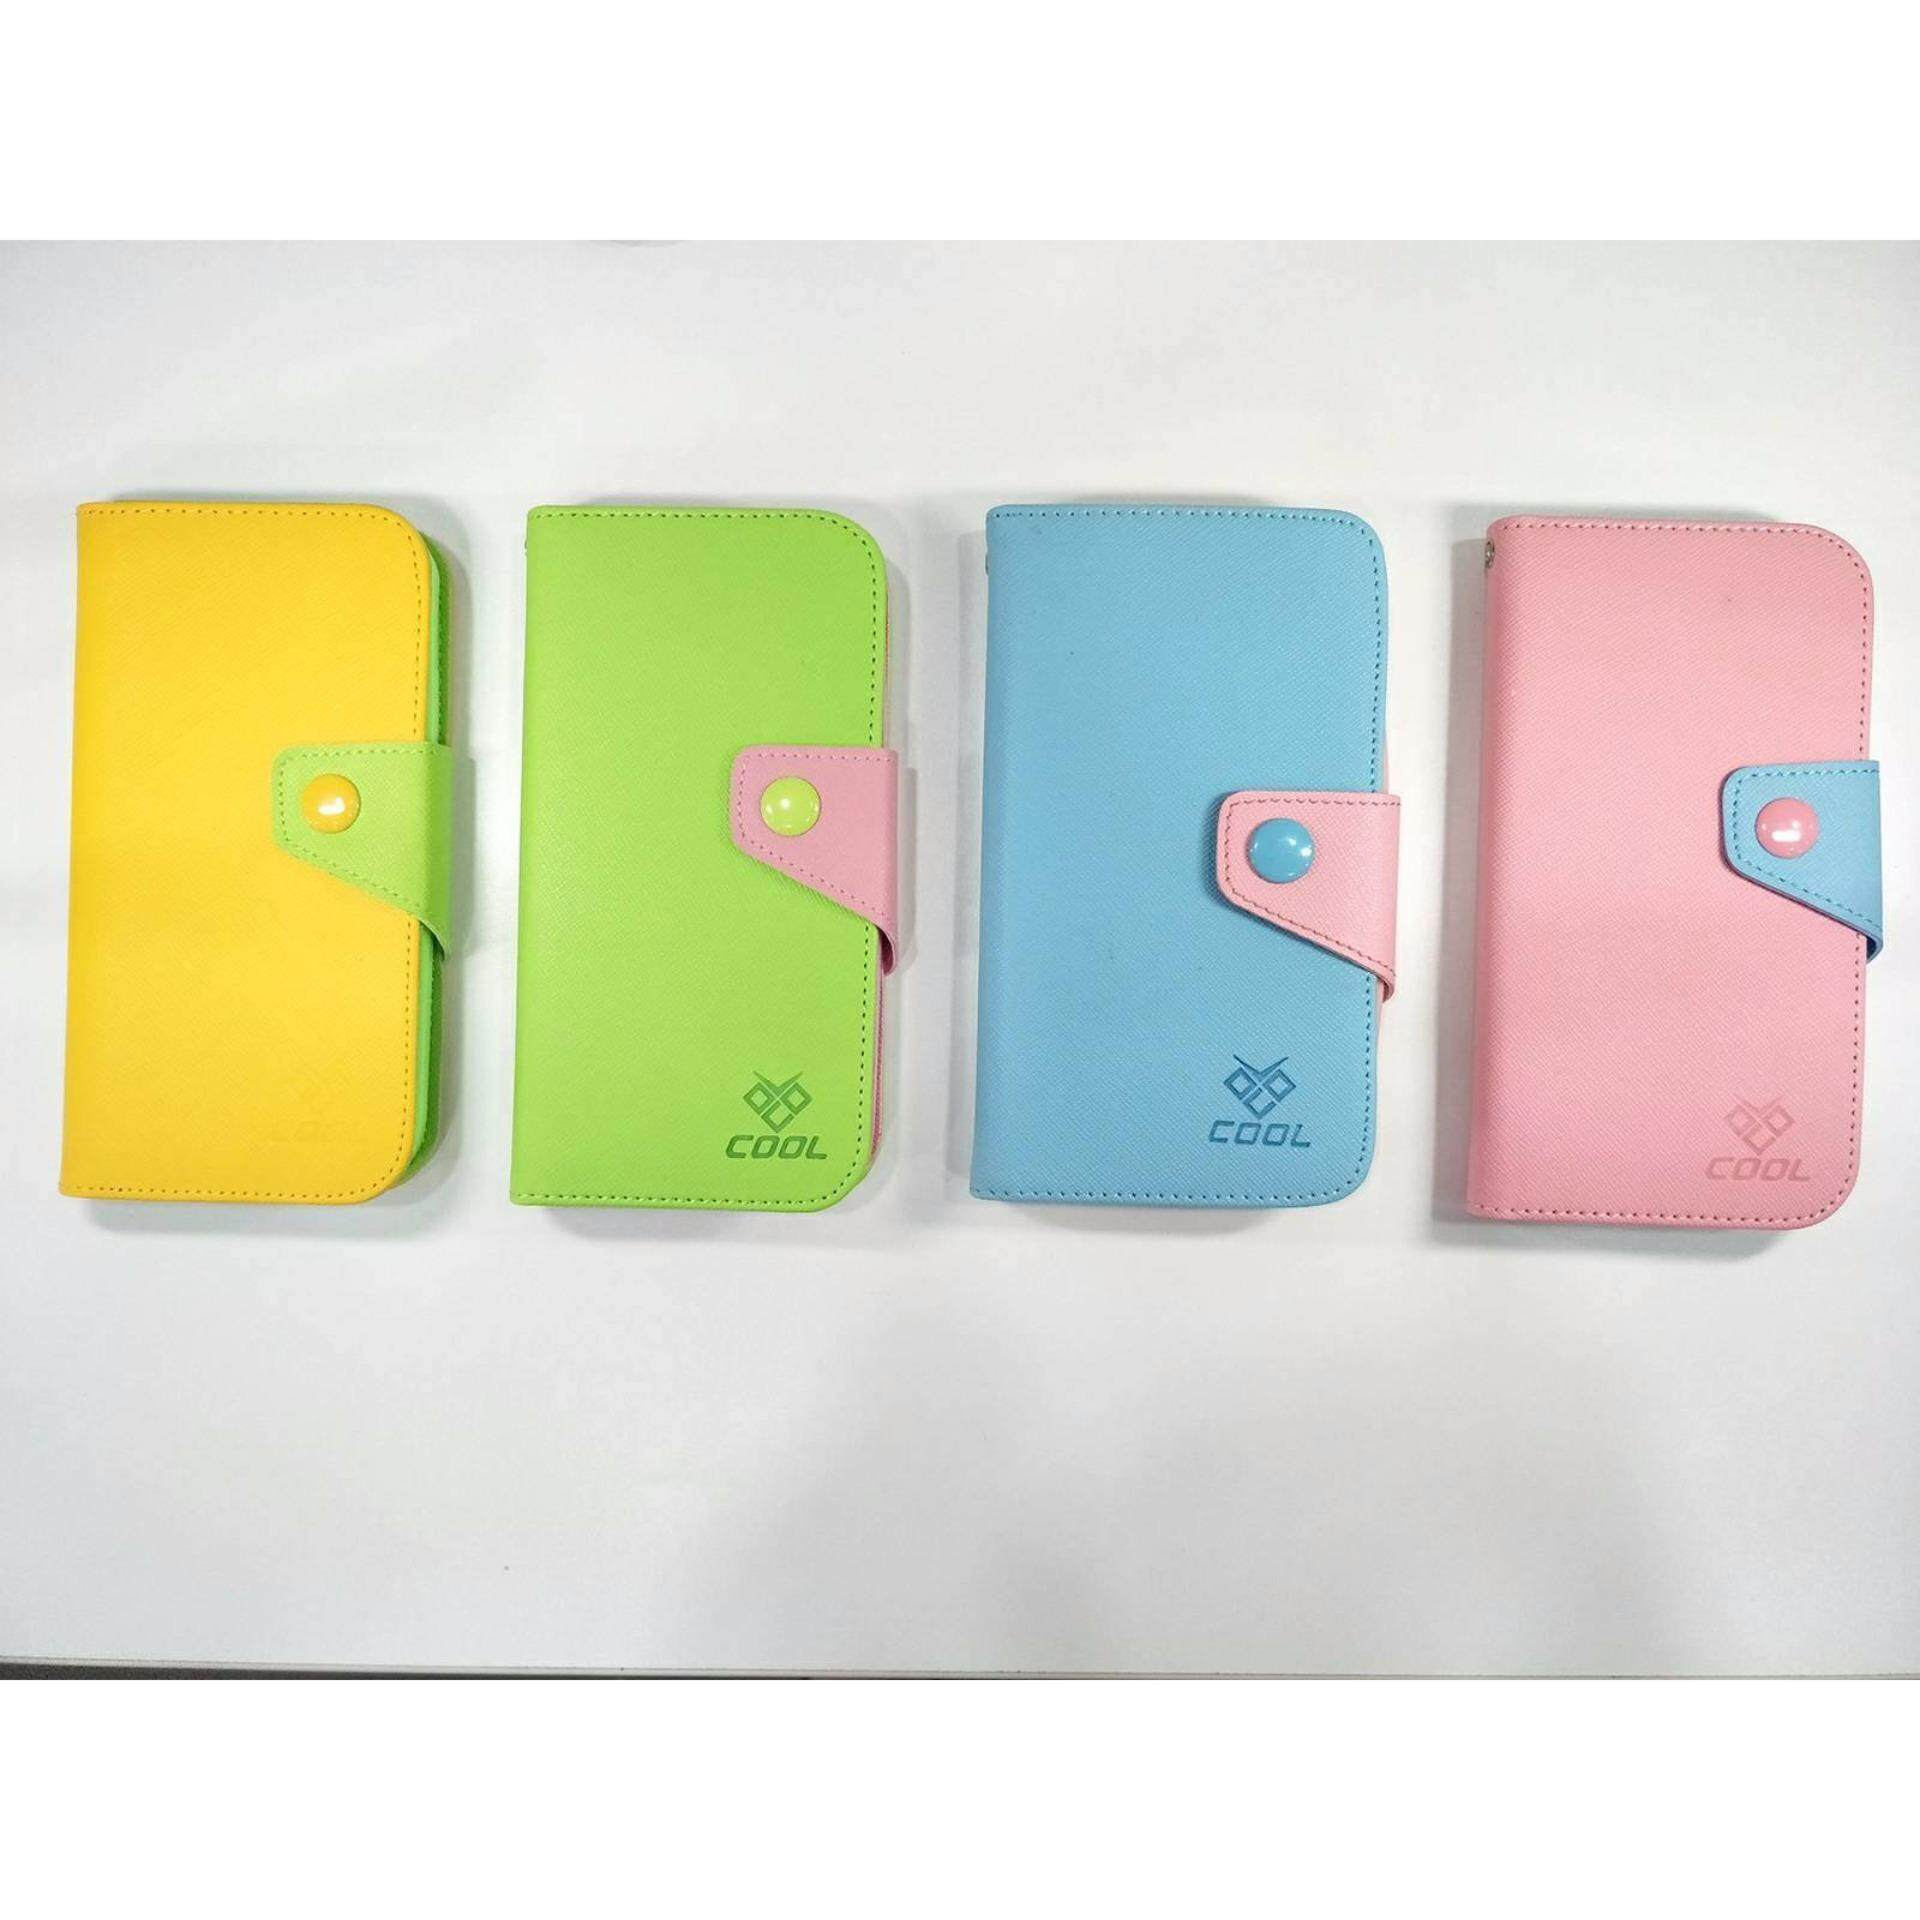 Online Sales New Arrival Hori Casing Mika Ps Vita Slim Cool Leather Case For Samsung Galaxy S4 I9500